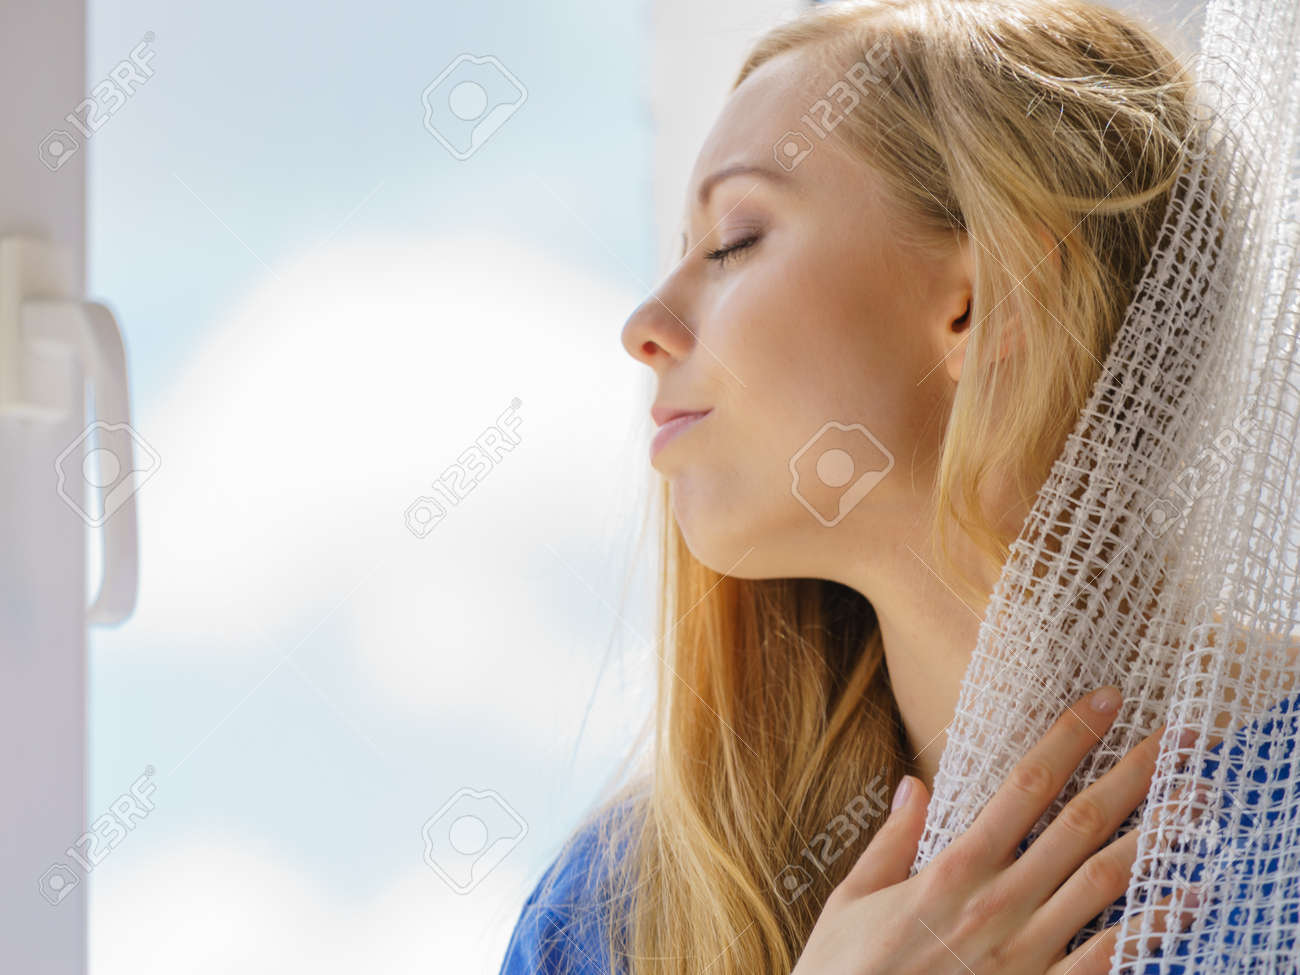 Happy woman with long blonde hair sitting on windowsill and relaxing, meditate or thinking holding white lace curtain. - 90618911